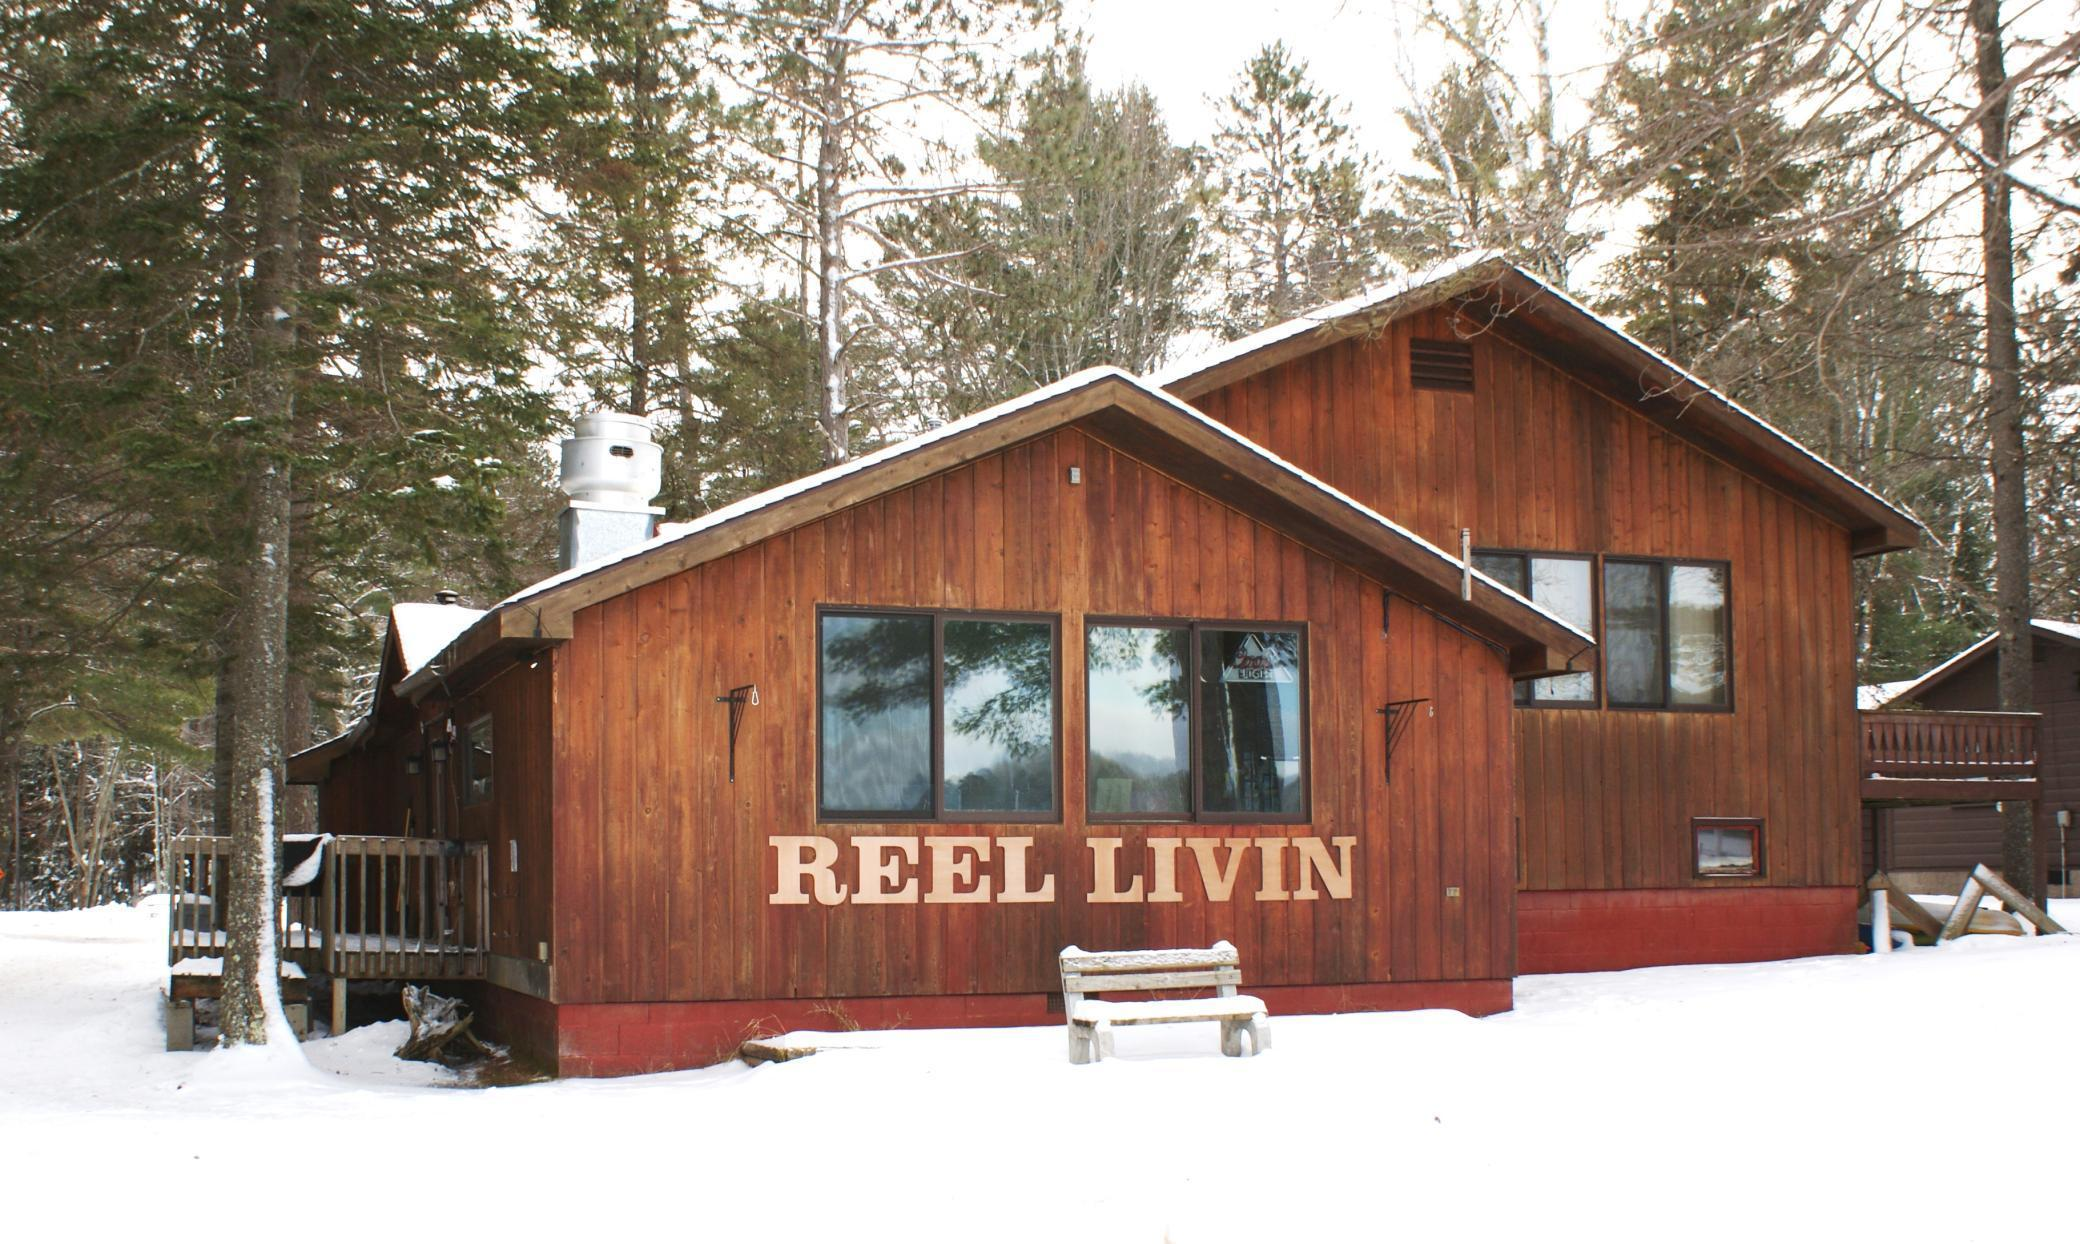 12463 N Reel Livin Drive Property Photo - Spider Lake Twp, WI real estate listing